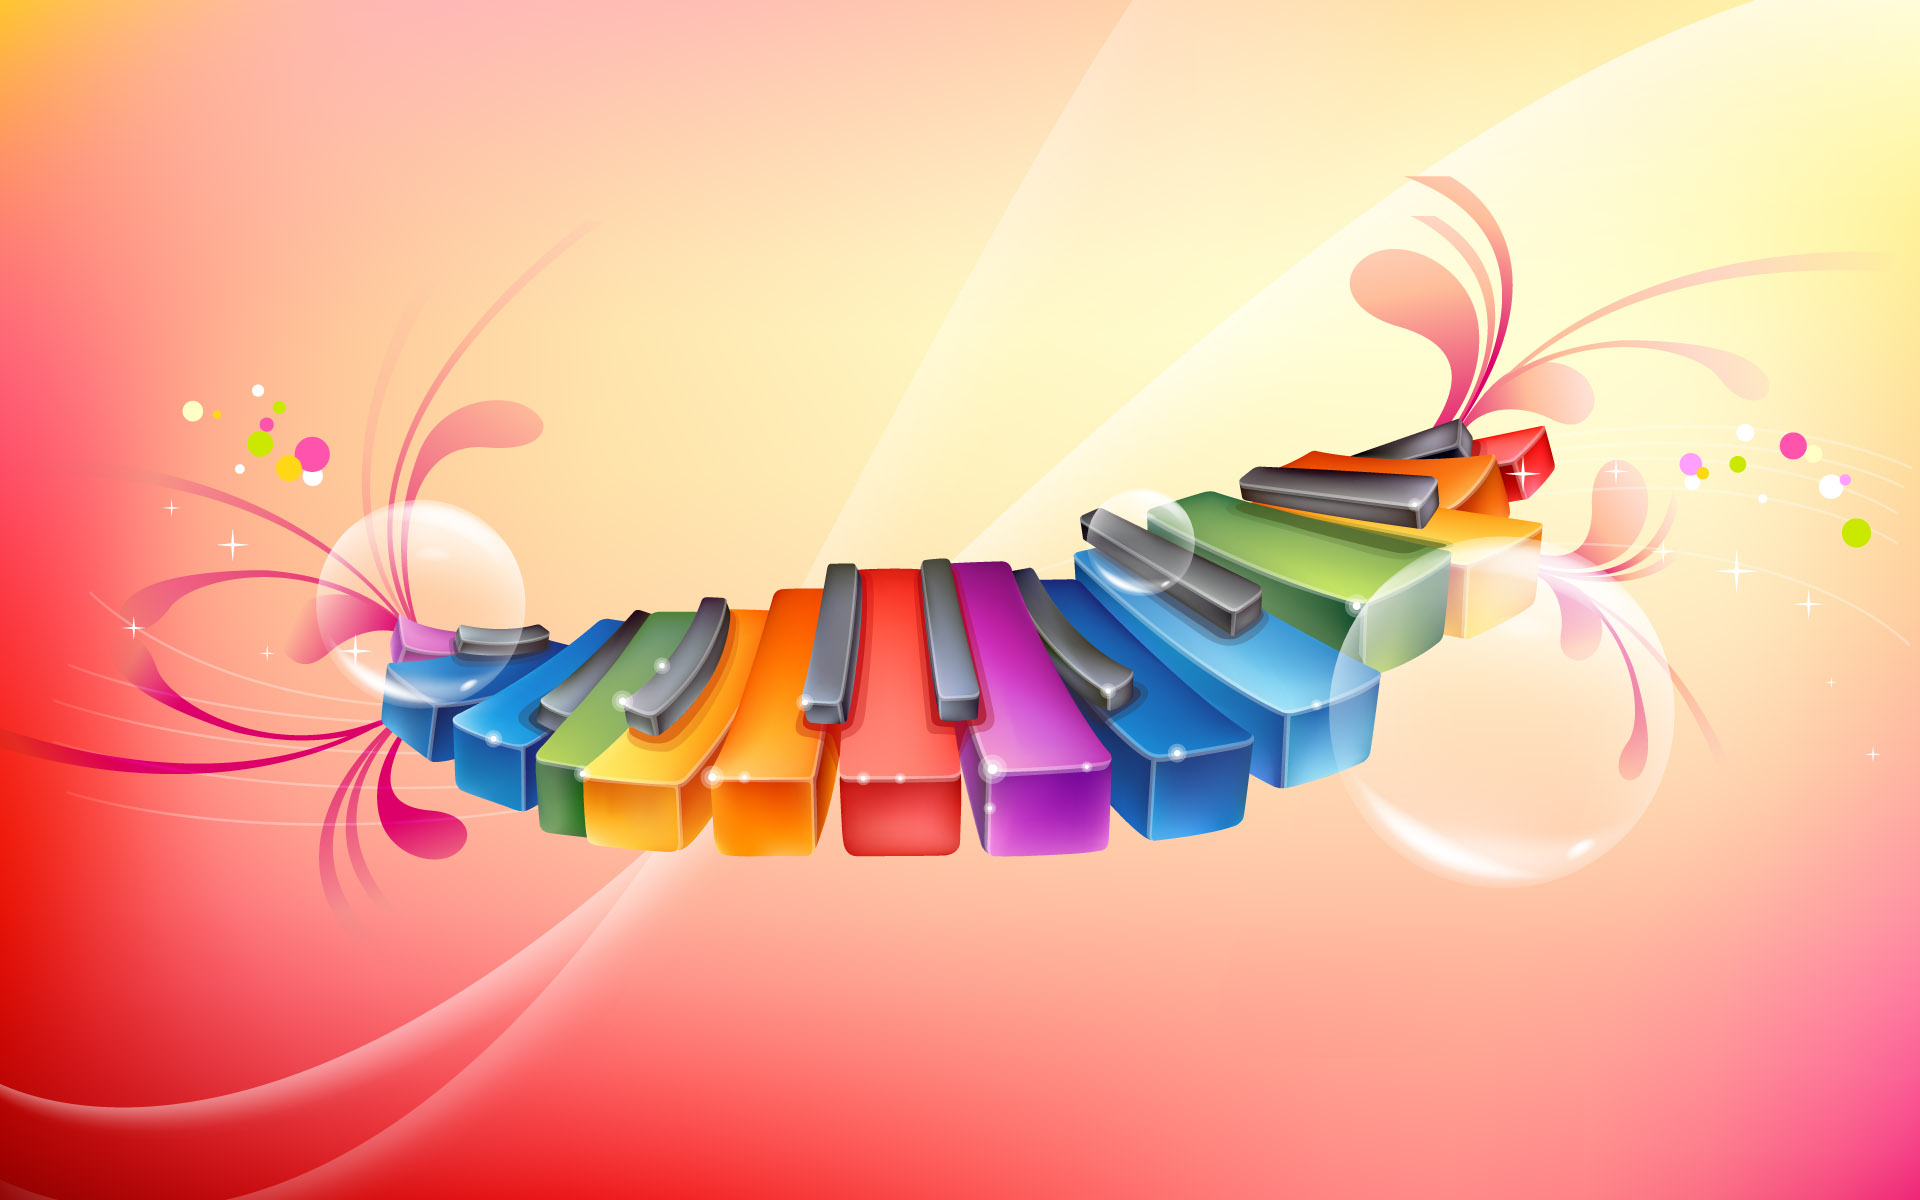 http://wallcoo.com/cartoon/Creative_Ideas_and_Digital_Design_1920x1200/wallpapers/1920x1200/Creative_design_rainbow_xylophone.jpg